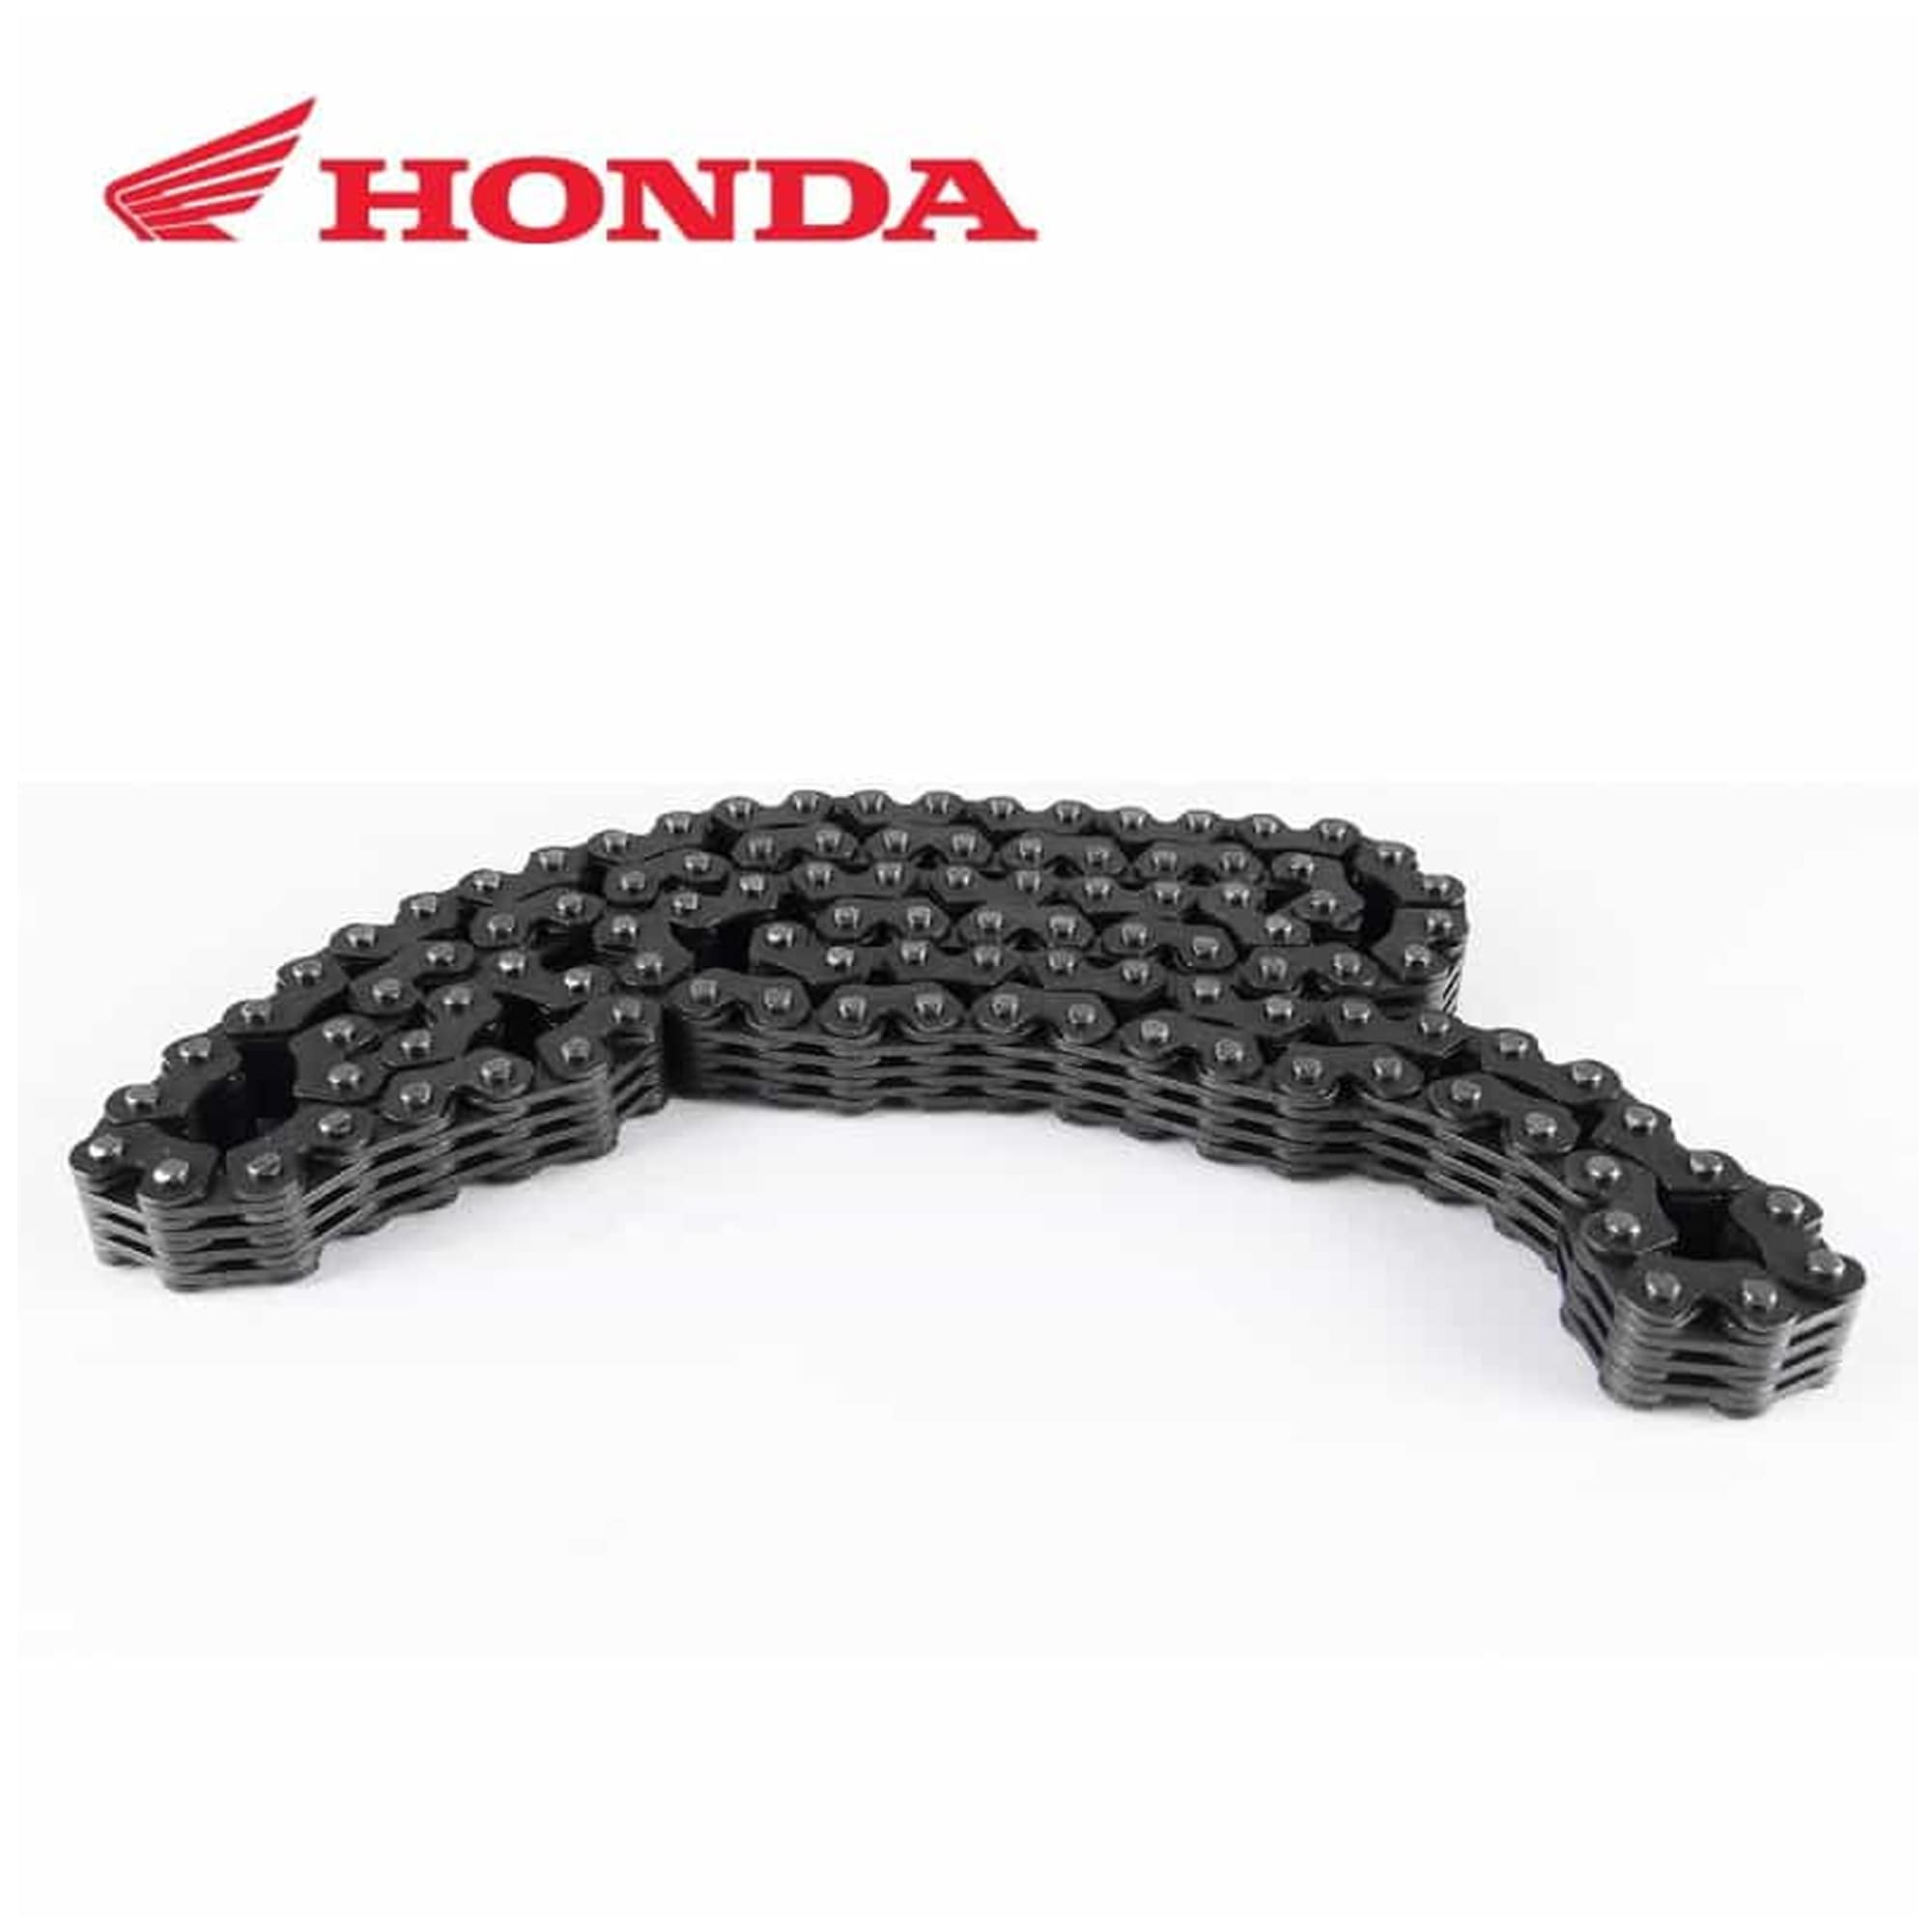 Corrente de Comando Original Honda CRF 250R 04/09 e 250X 04/12   - HP Race Off Road